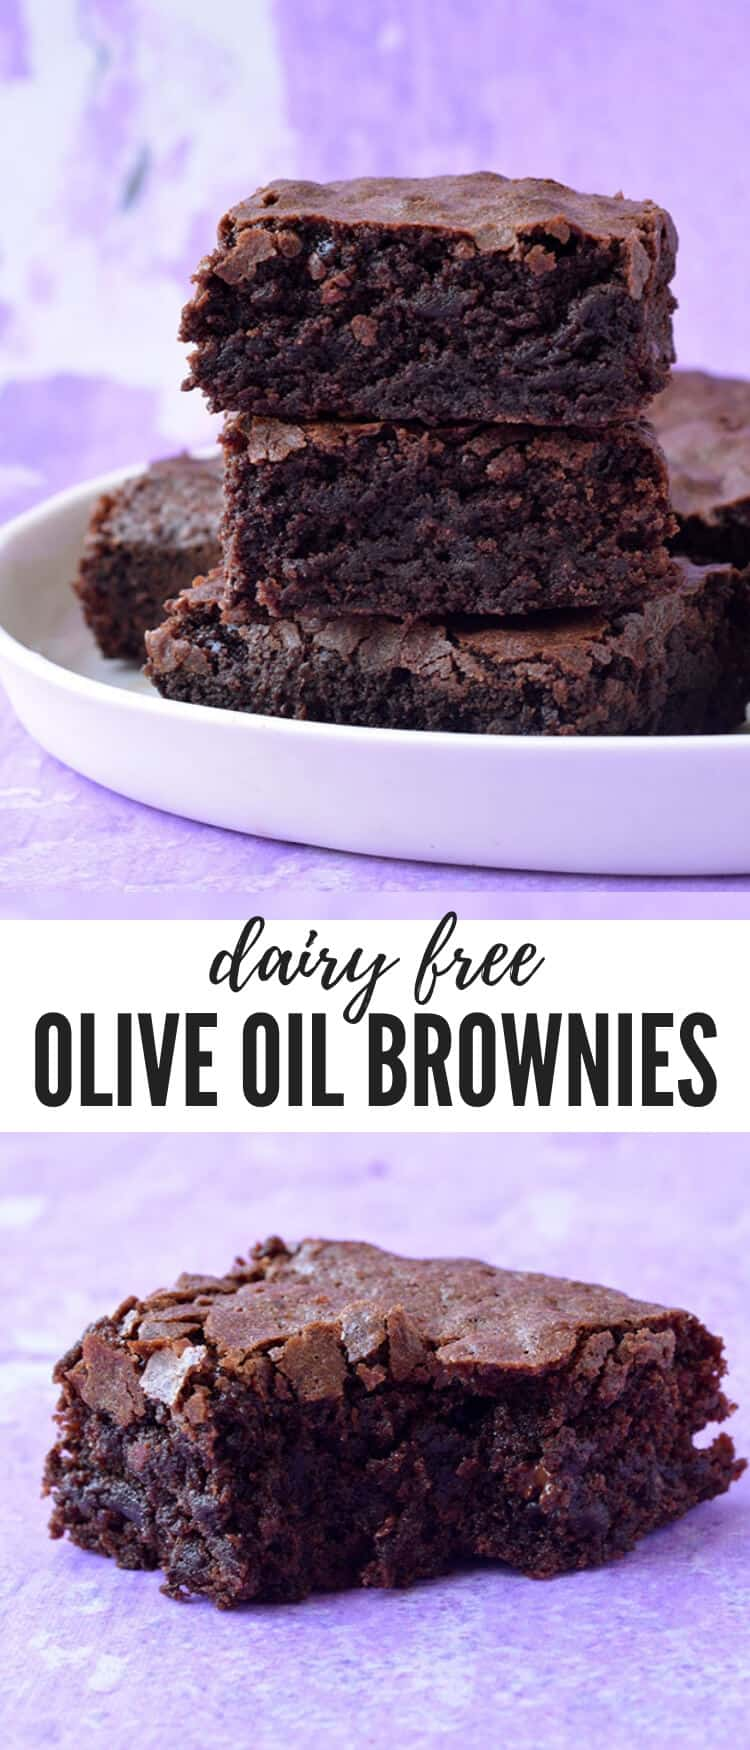 You'll fall head over heels for these deliciously easy Olive Oil Brownies. Filled to the brim with chocolate, these dairy free brownies have a crispy, crinkly top and a super fudgy centre. Recipe from sweetestmenu.com #brownies #chocolate #dairyfree #dessert